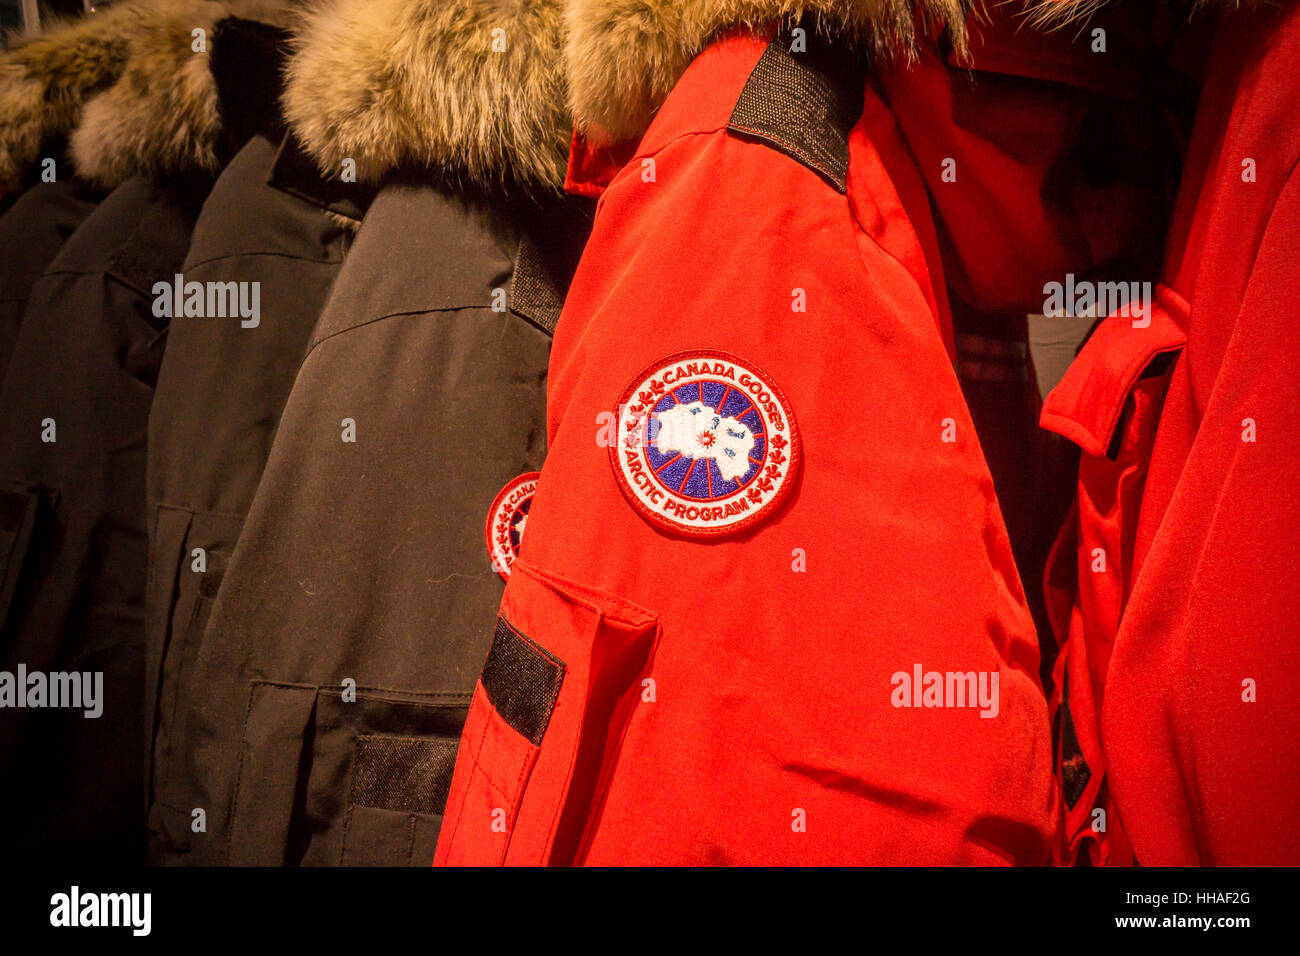 Canada Goose brand parkas in their flagship store in New York on Saturday, January 14, 2017. Canada Goose is reported to be planning an initial public ...